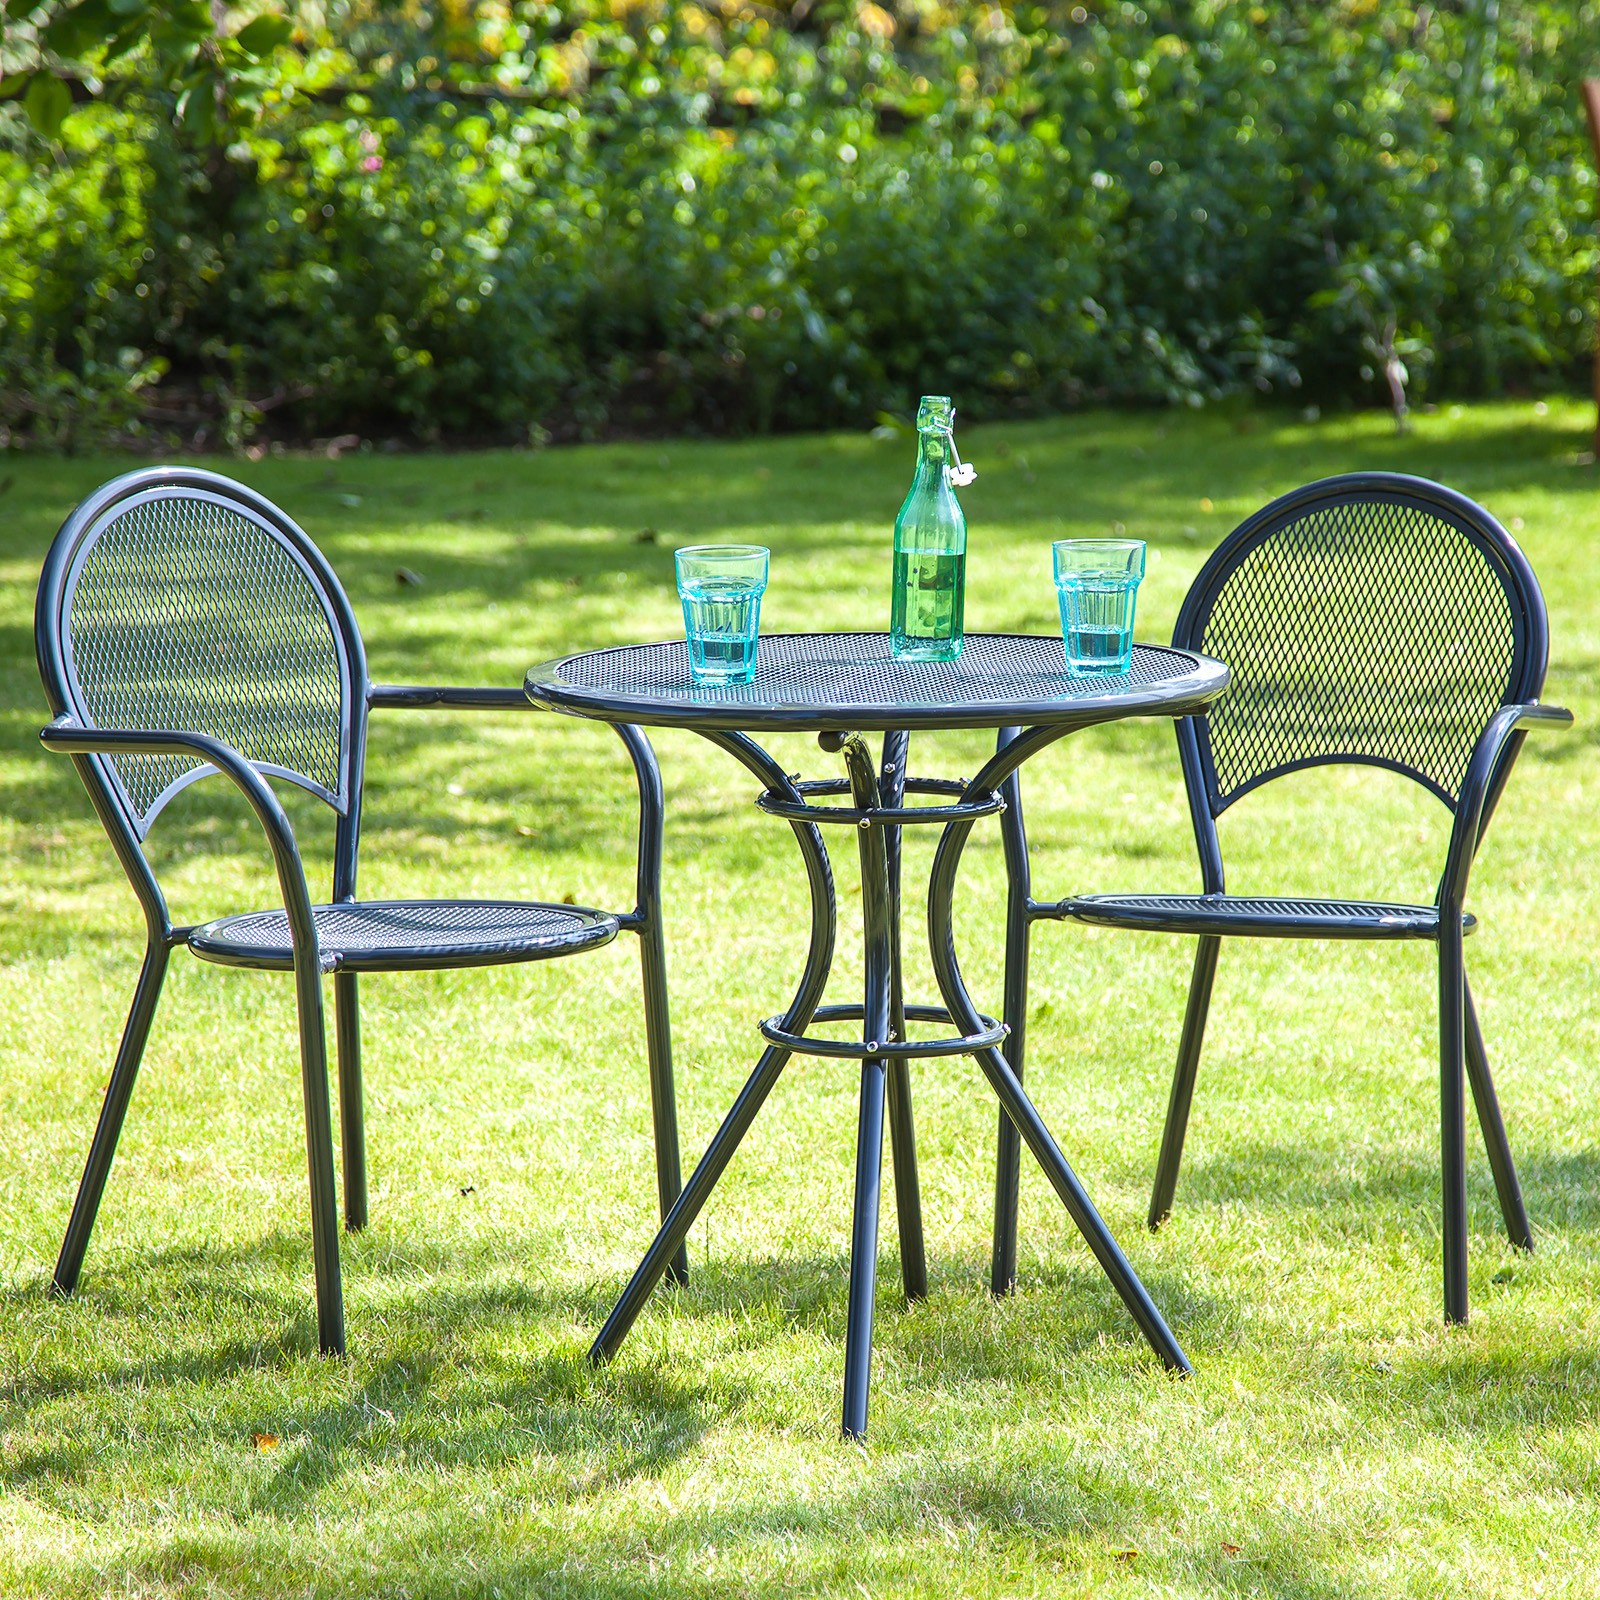 Alfresia Miami Aluminium Round Garden Furniture Bistro Set